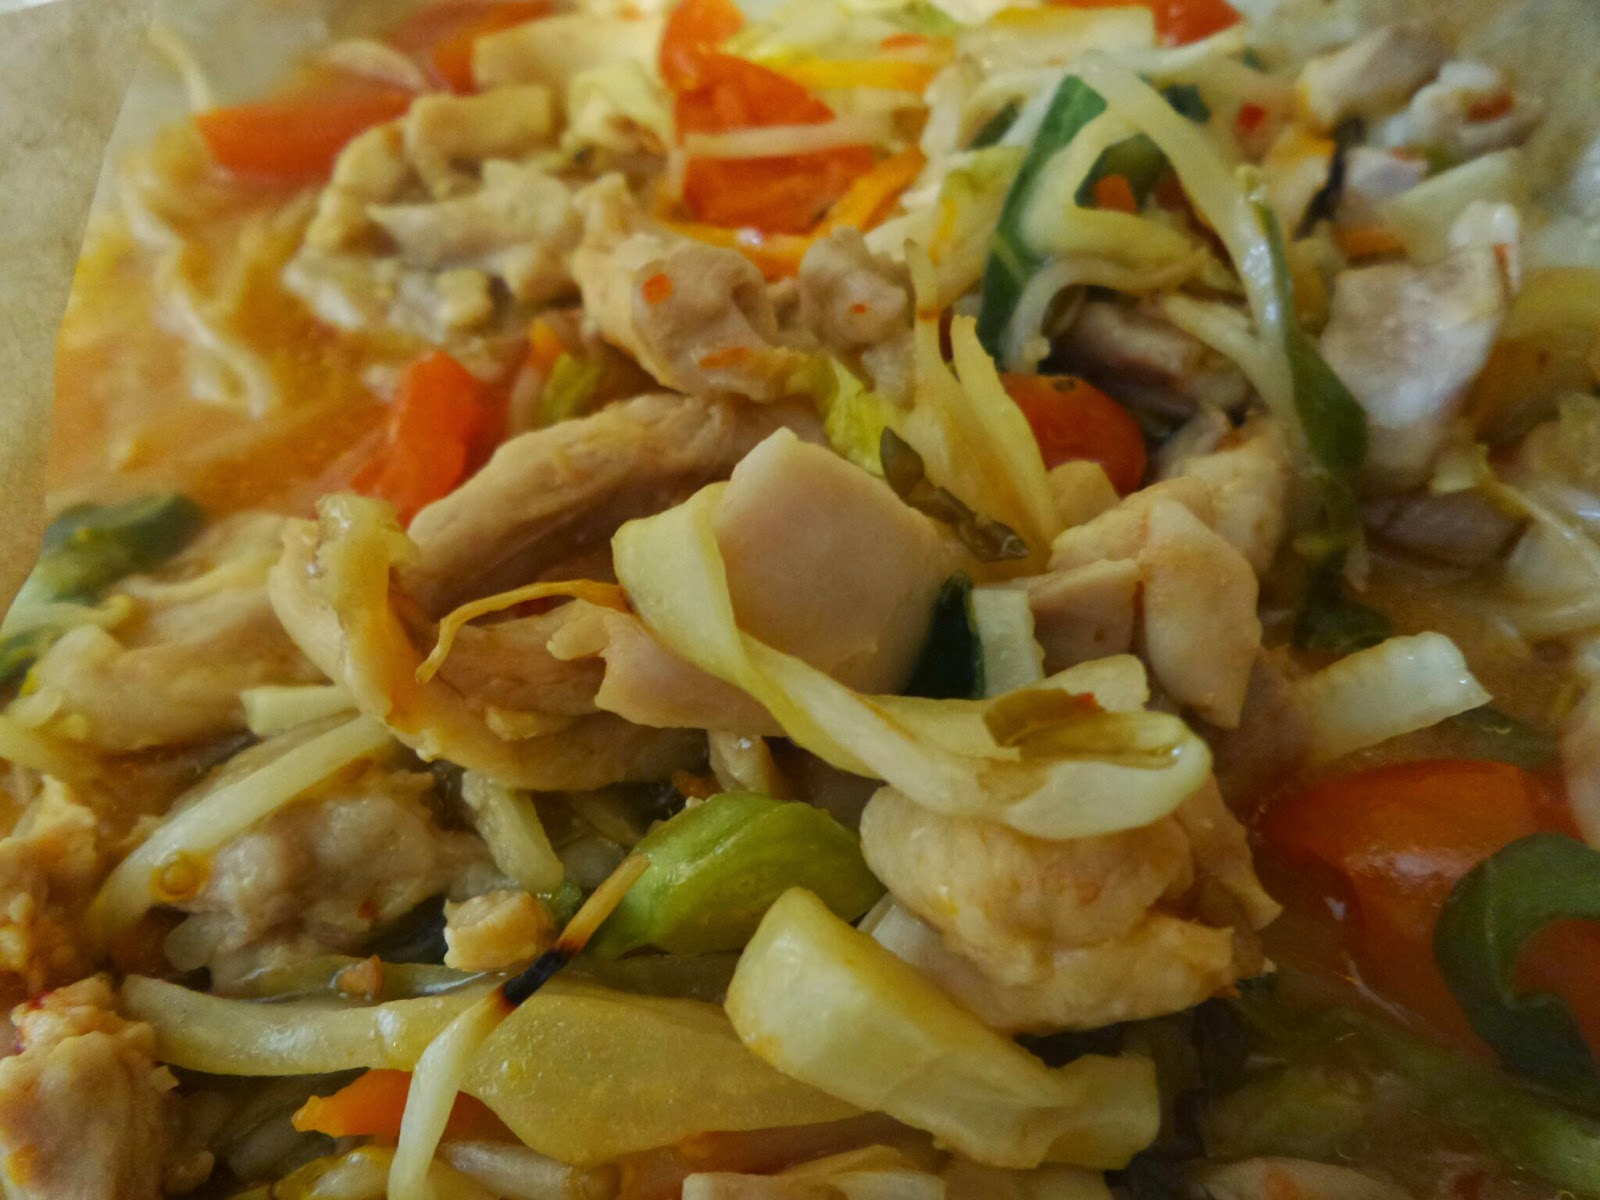 Microwave cooked Chicken, Noodles and Veg